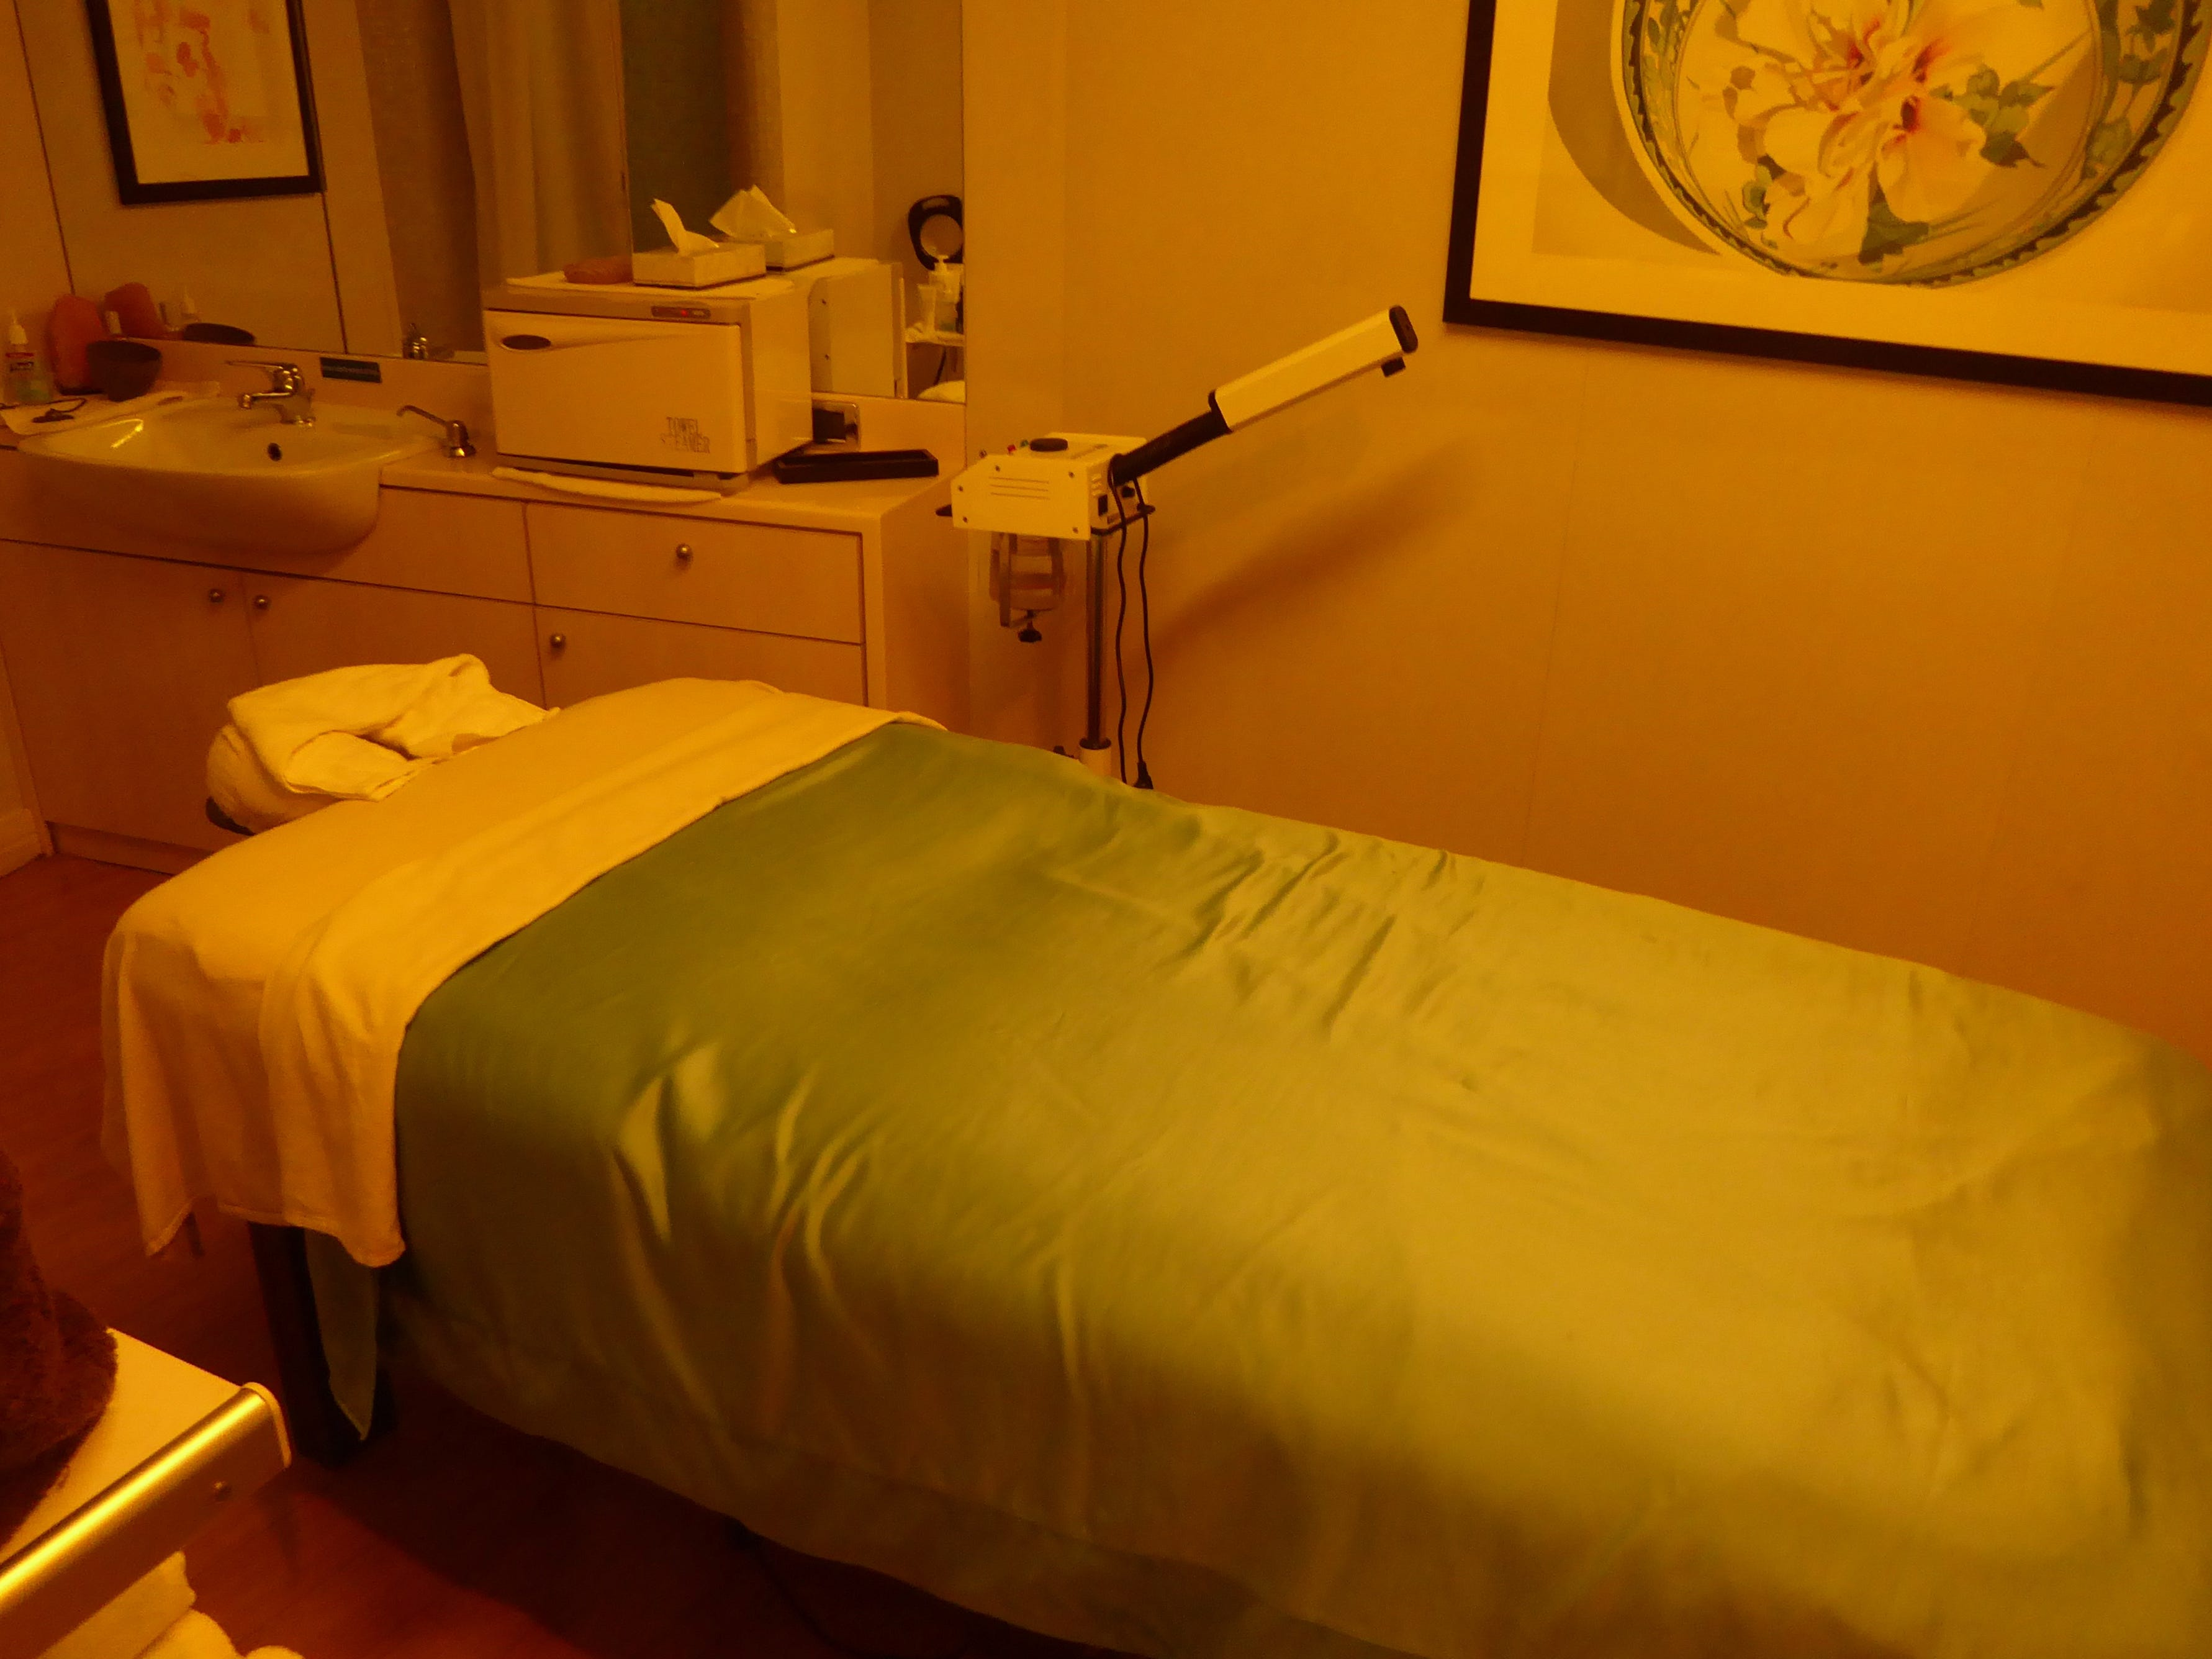 This is treatment room 4 in the Indulgence Spa.